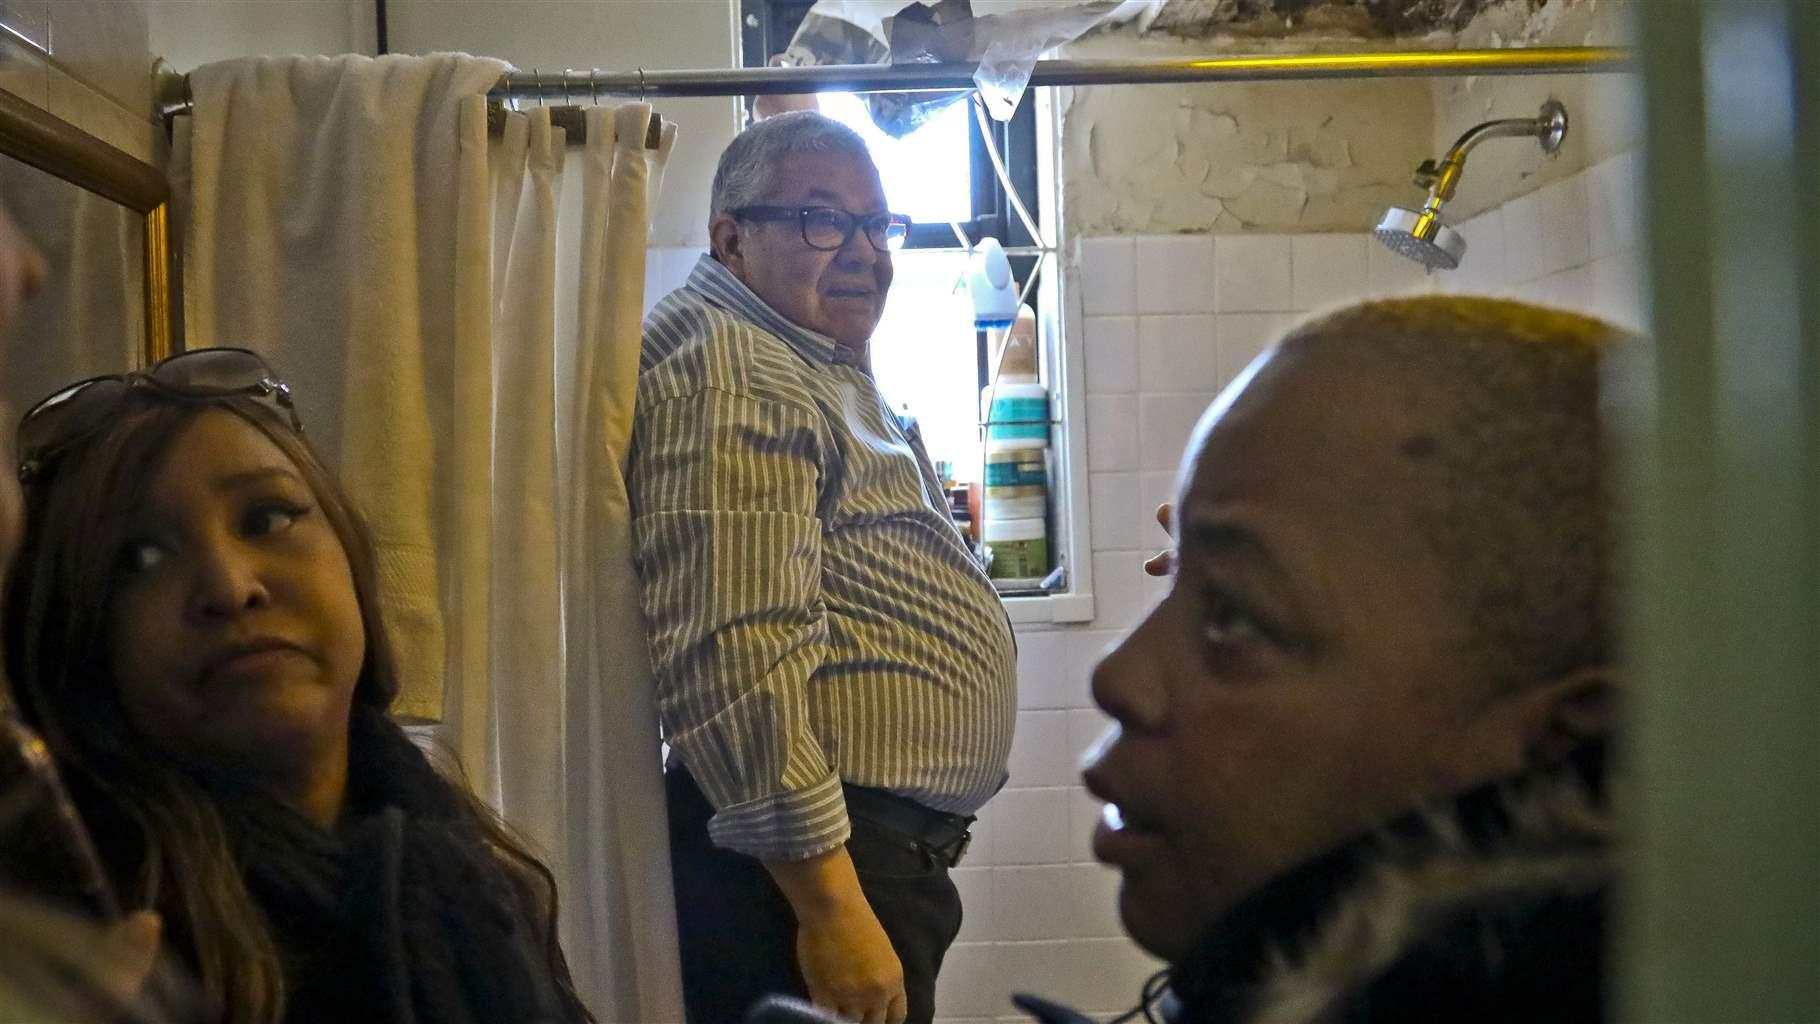 HUD Spends Millions on Lead Abatement. Why Are Public Housing Authorities Still Struggling?